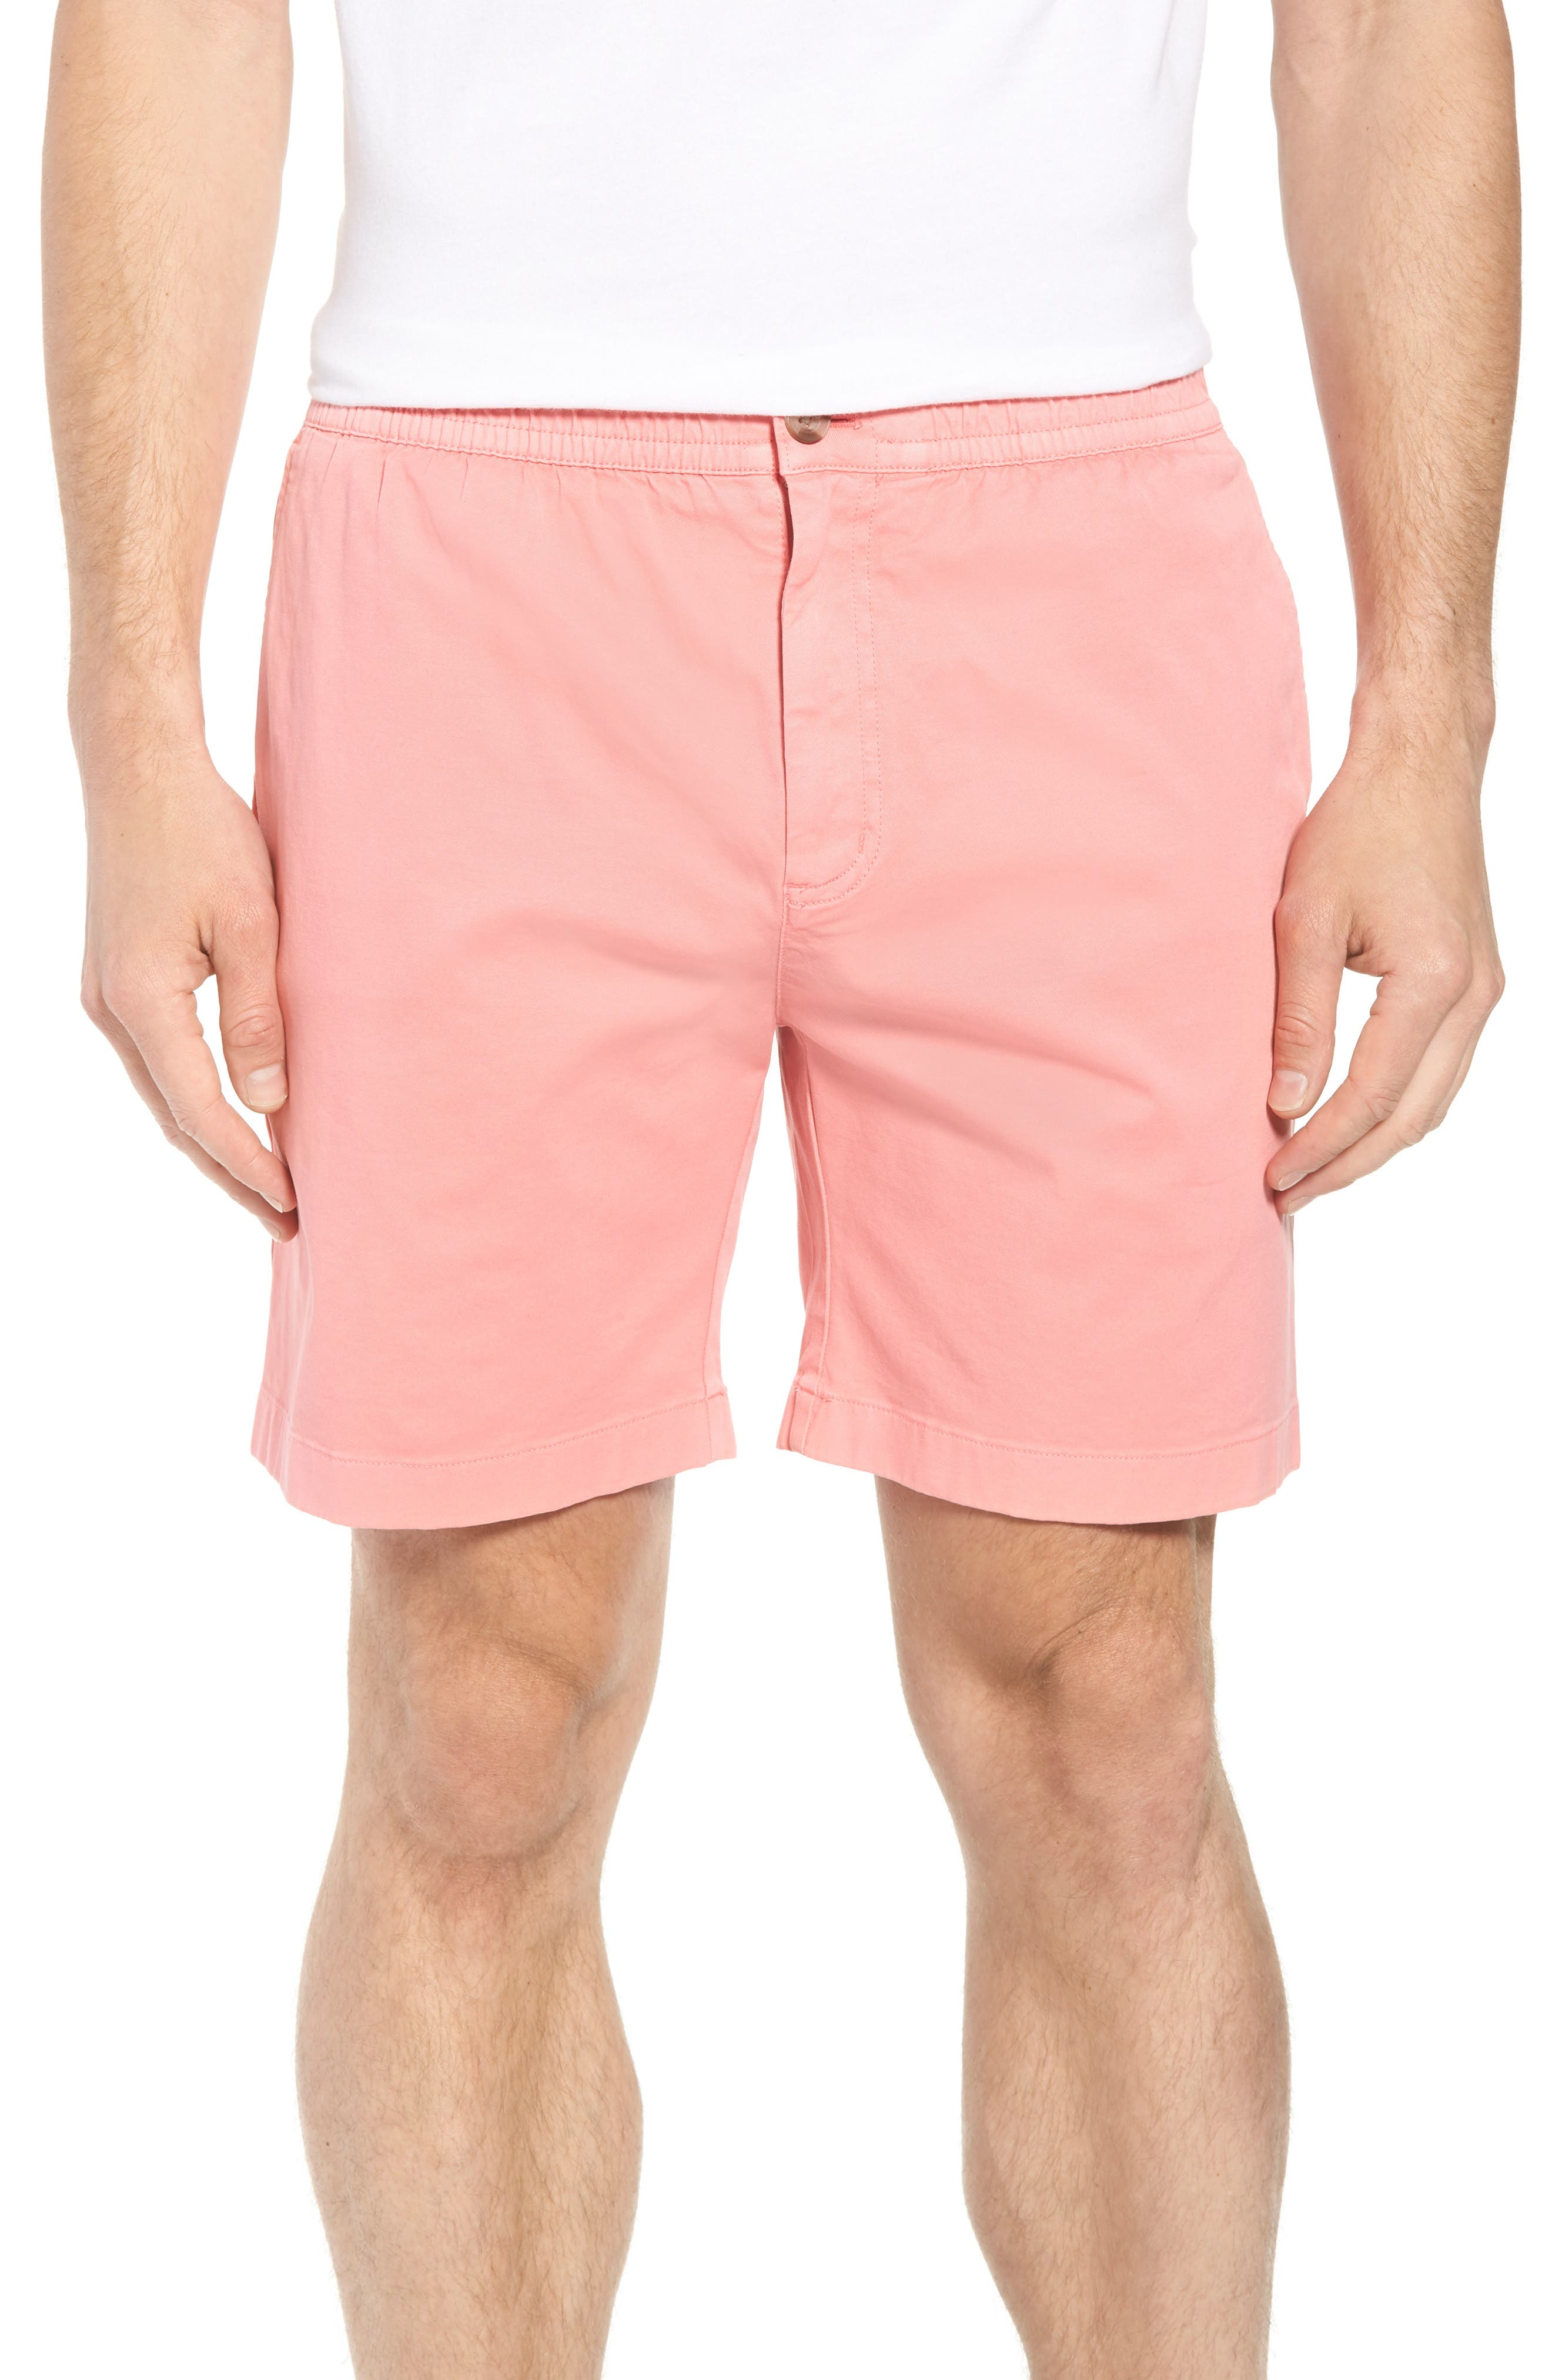 Jetty Stretch Cotton Shorts,                             Main thumbnail 1, color,                             Cape Coral